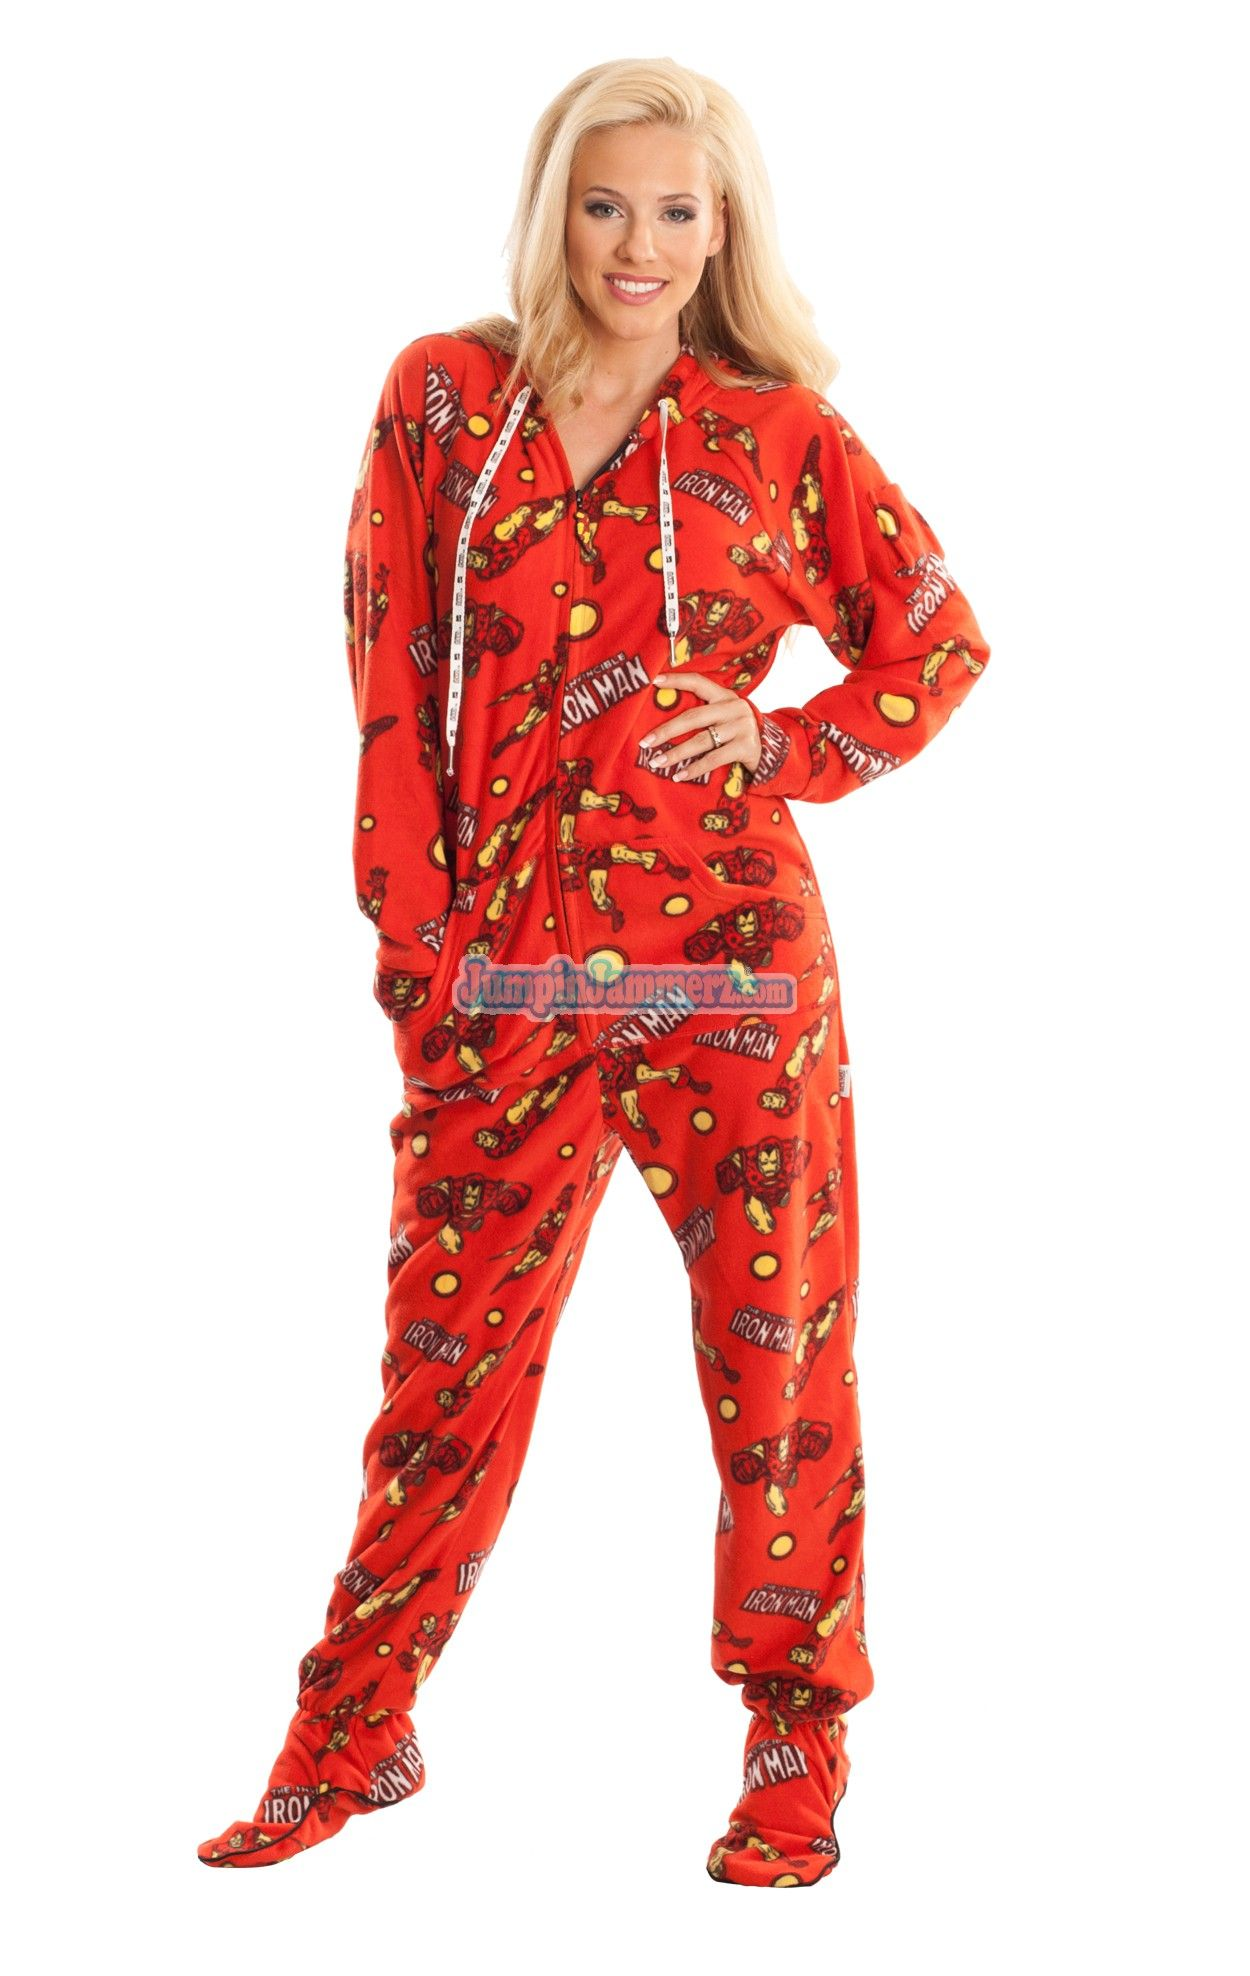 8d4c34f9c Ironman - Marvel Comics - Pajamas Footie PJs Onesies One Piece Adult ...